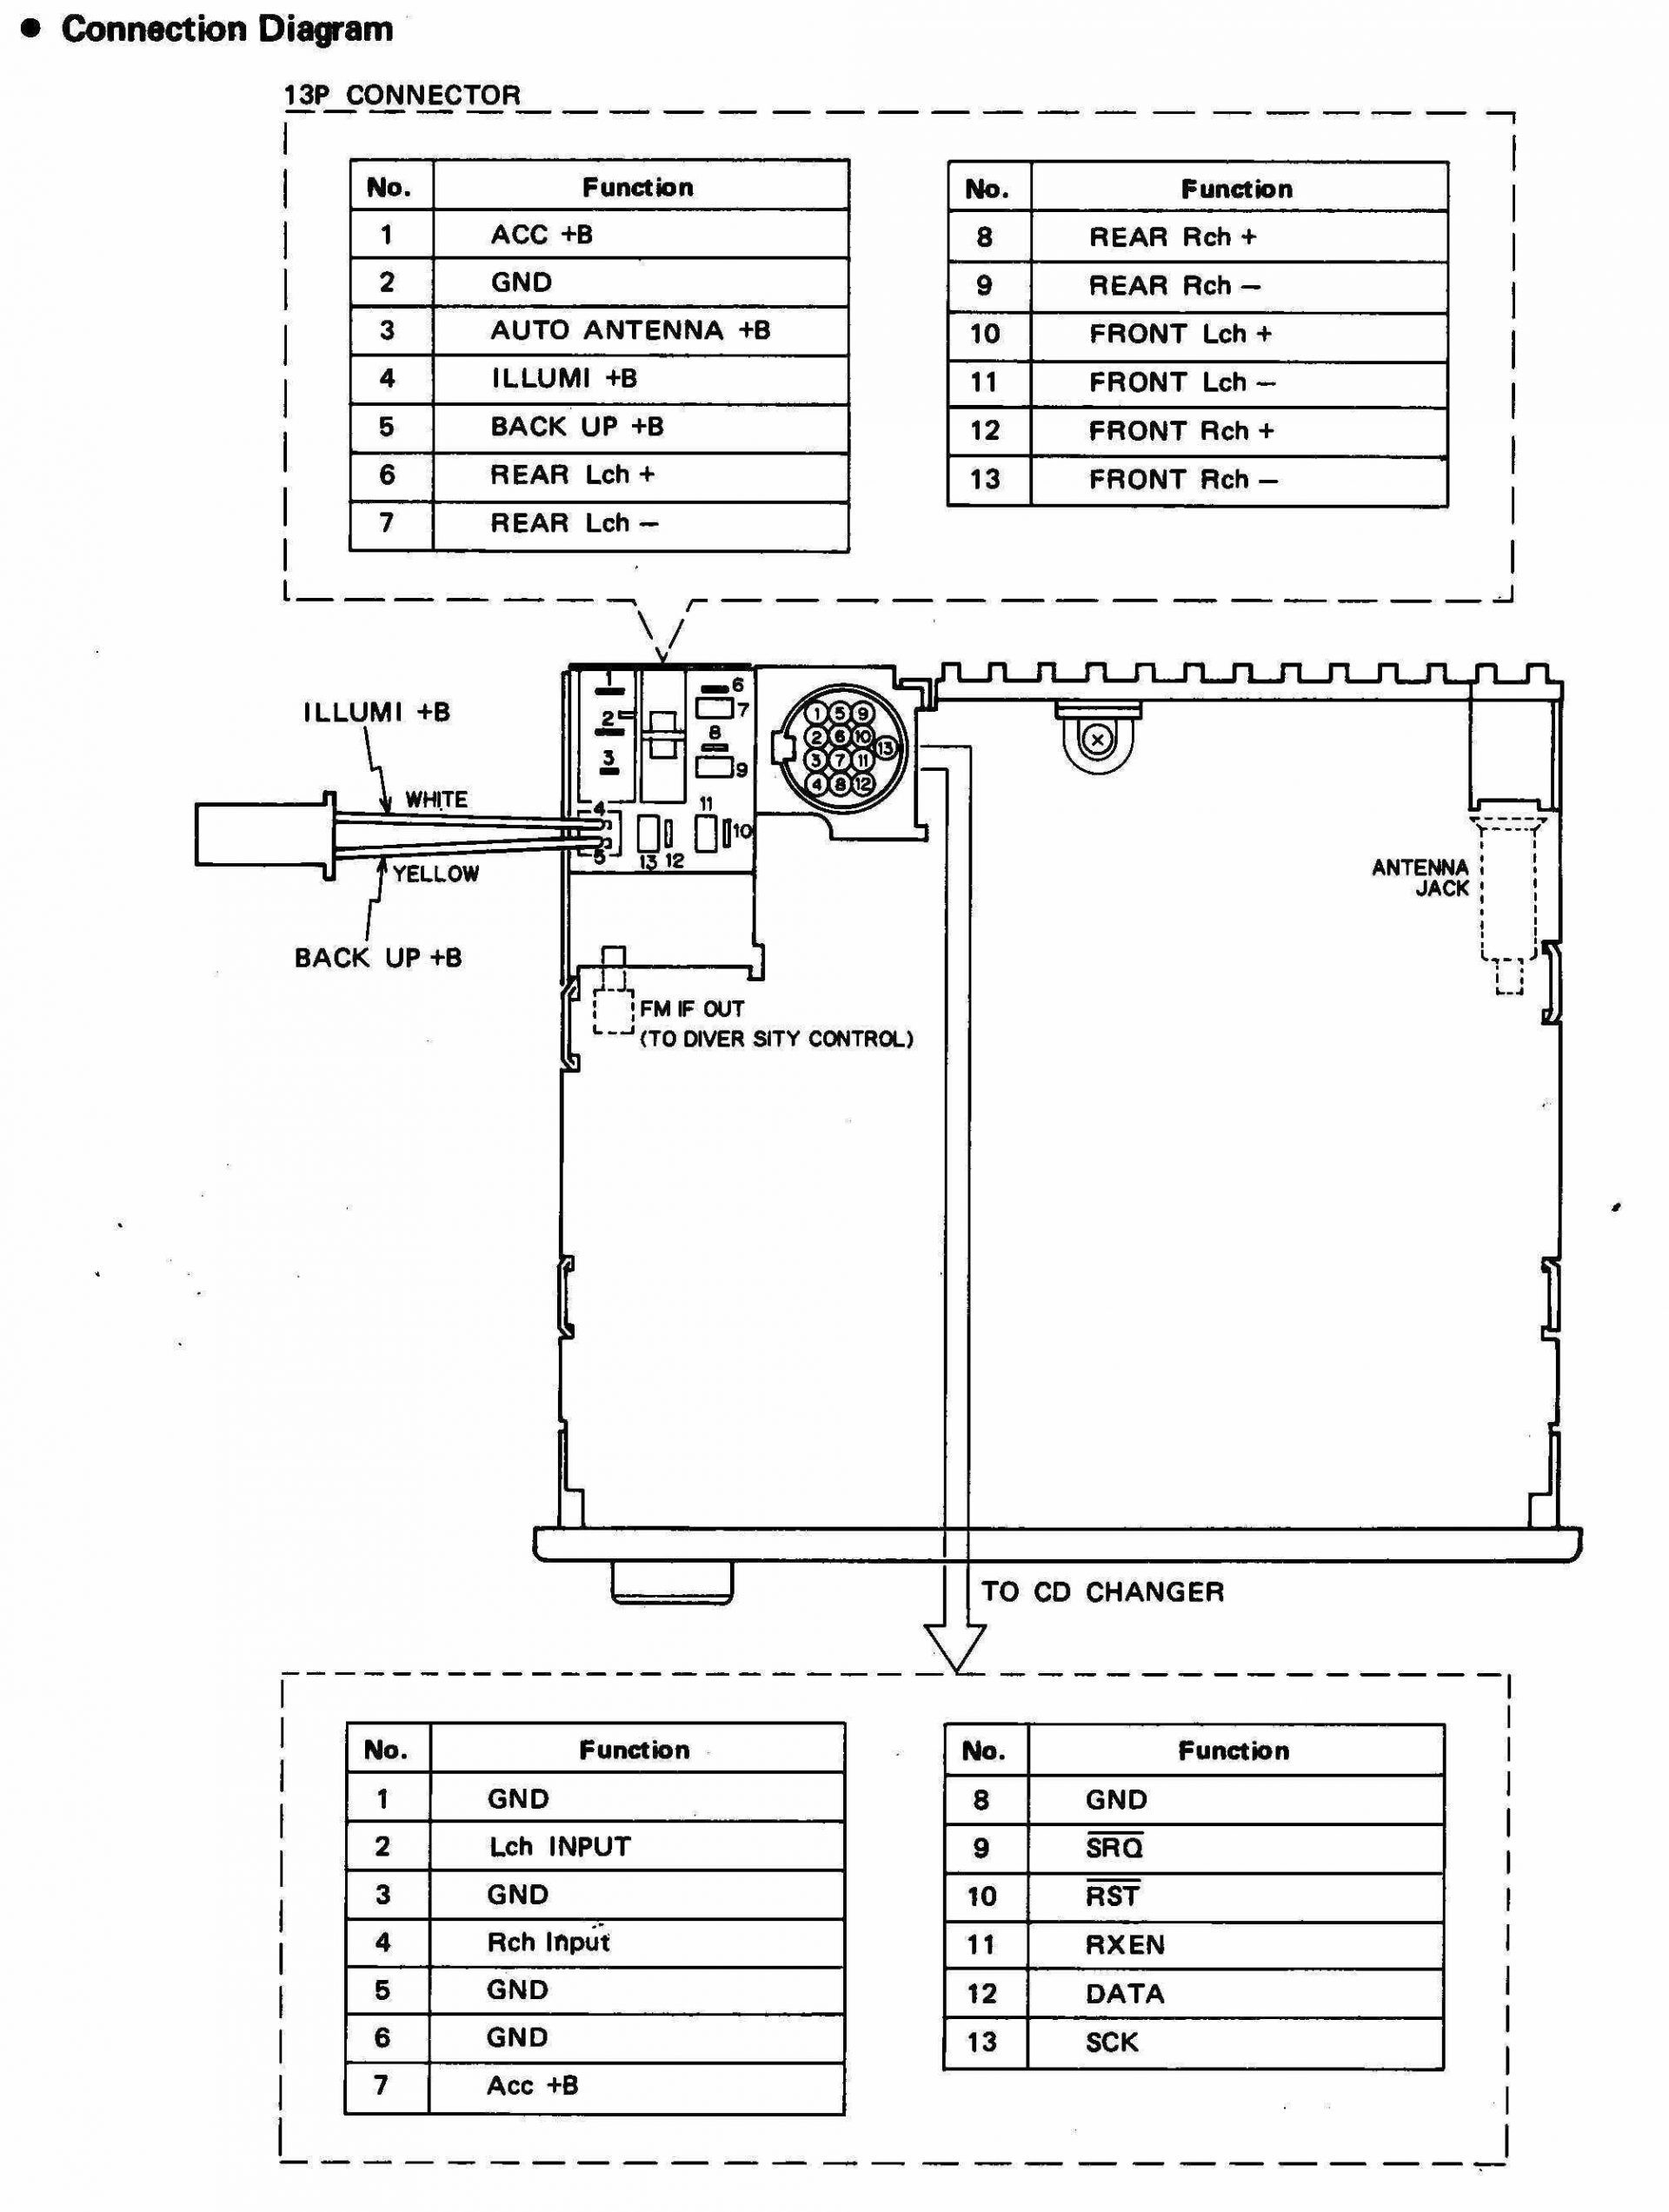 Wiring Diagram For Pioneer Avh X2800Bs | Wiring Diagram - Pioneer Avh-X2800Bs Wiring Harness Diagram